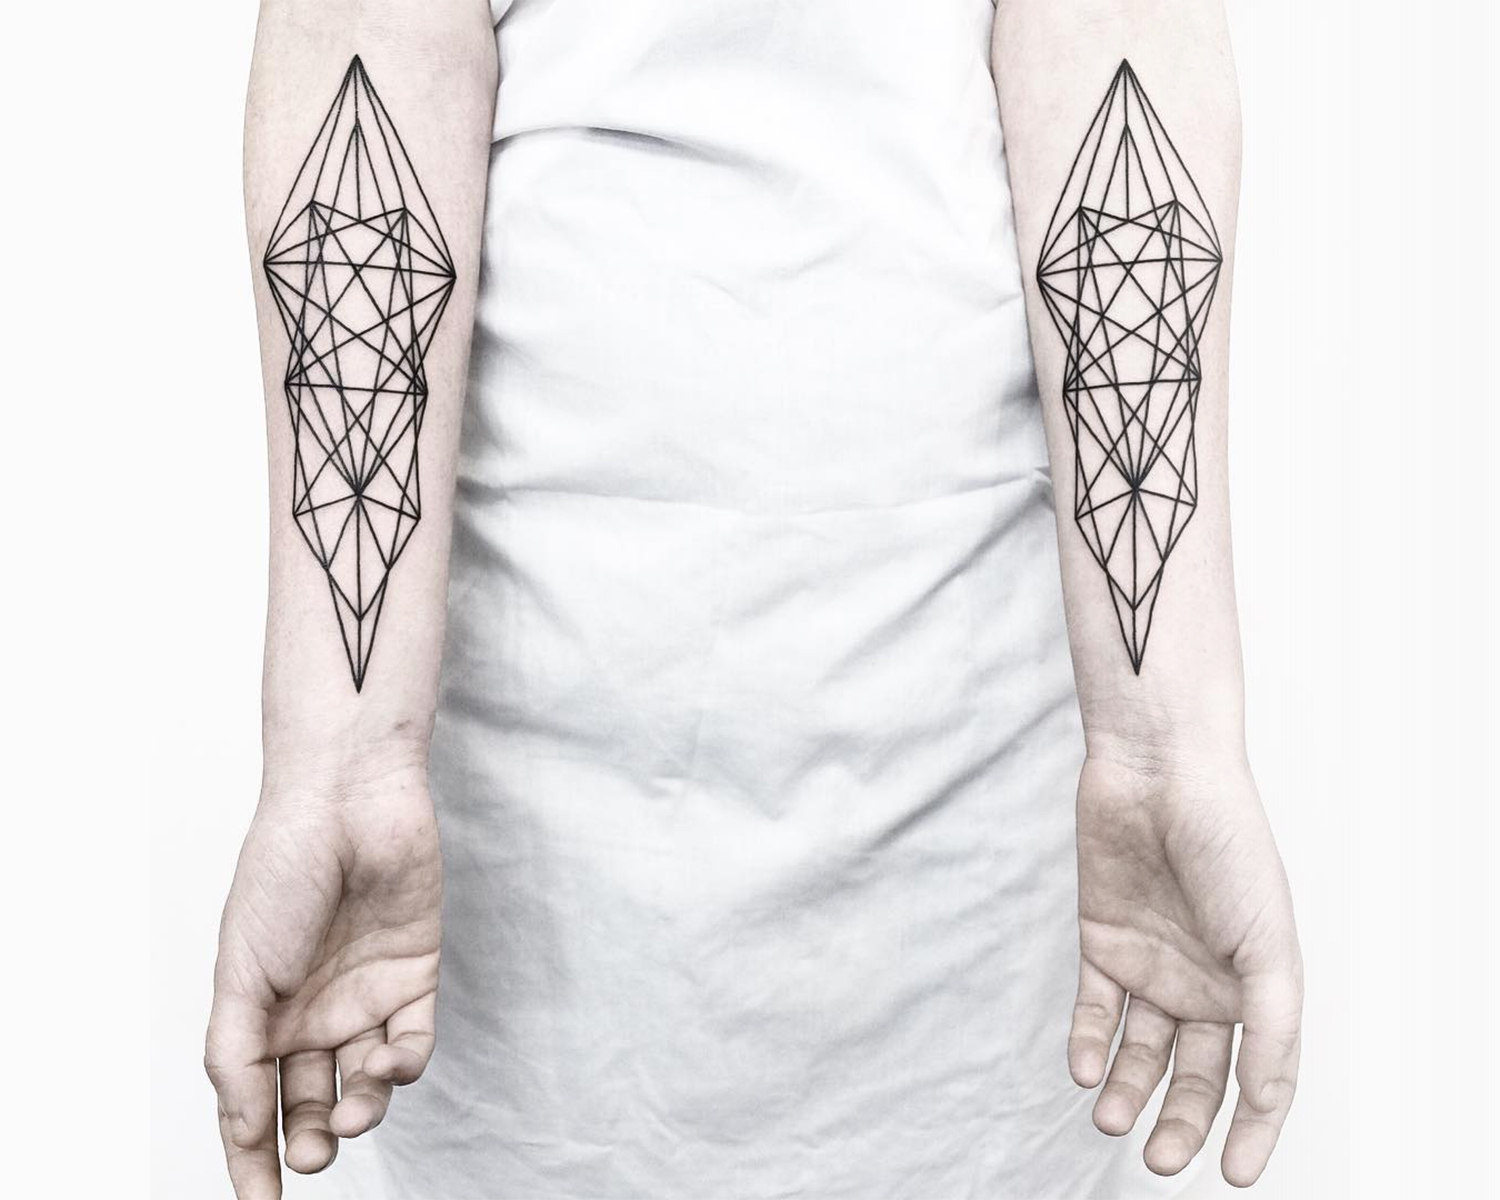 geometric shapes on arms